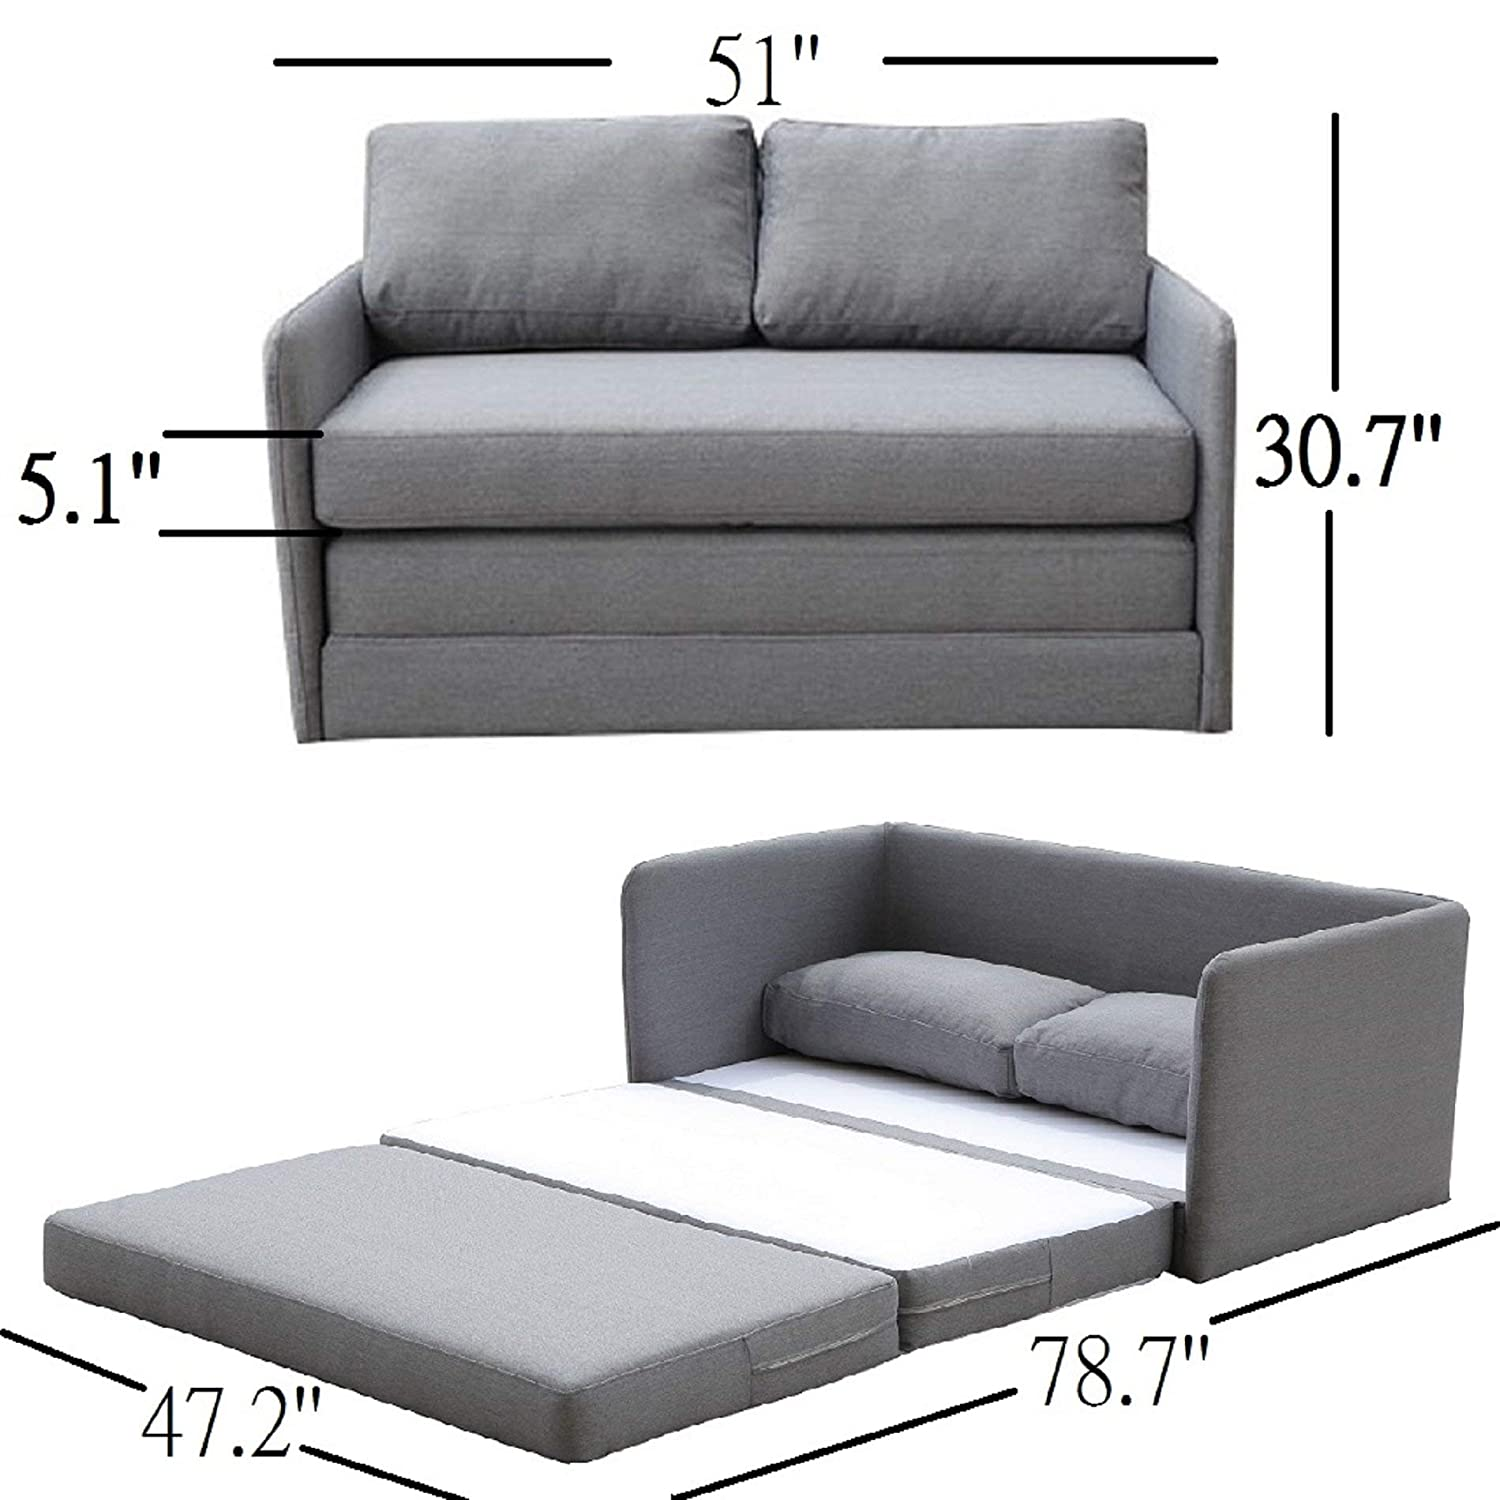 Container Furniture Direct Kathy Collection Modern Contemporary Fabric  Upholstered Livingroom Loveseat Sleeper, Grey